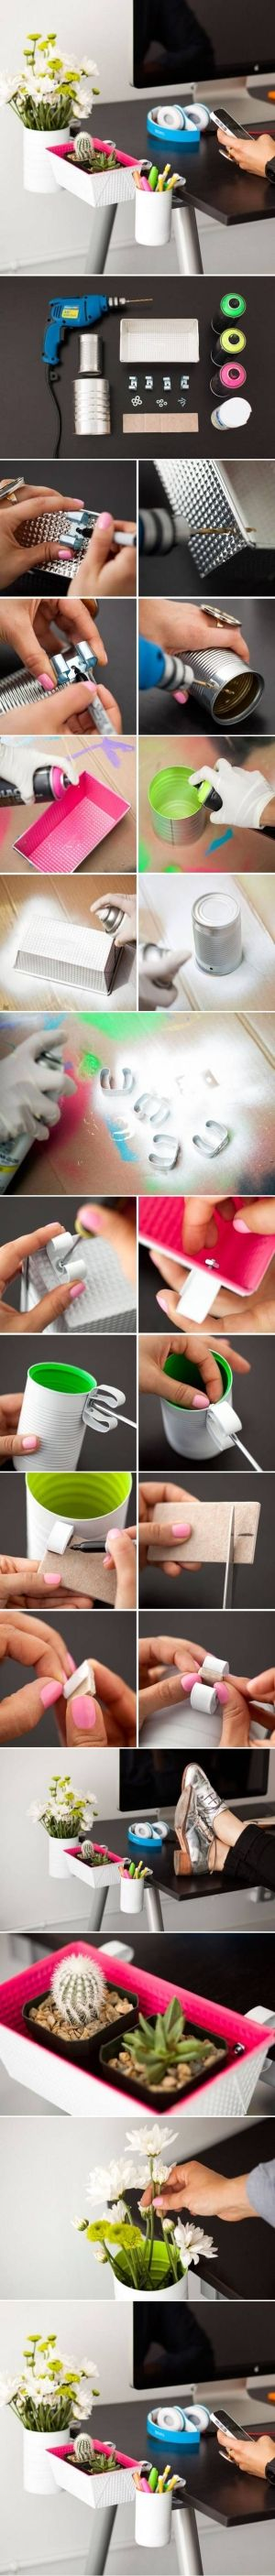 DIY Desk Deck by diyforever. Great idea for vanity organizing with accessories, ie. Curling irons, brushes